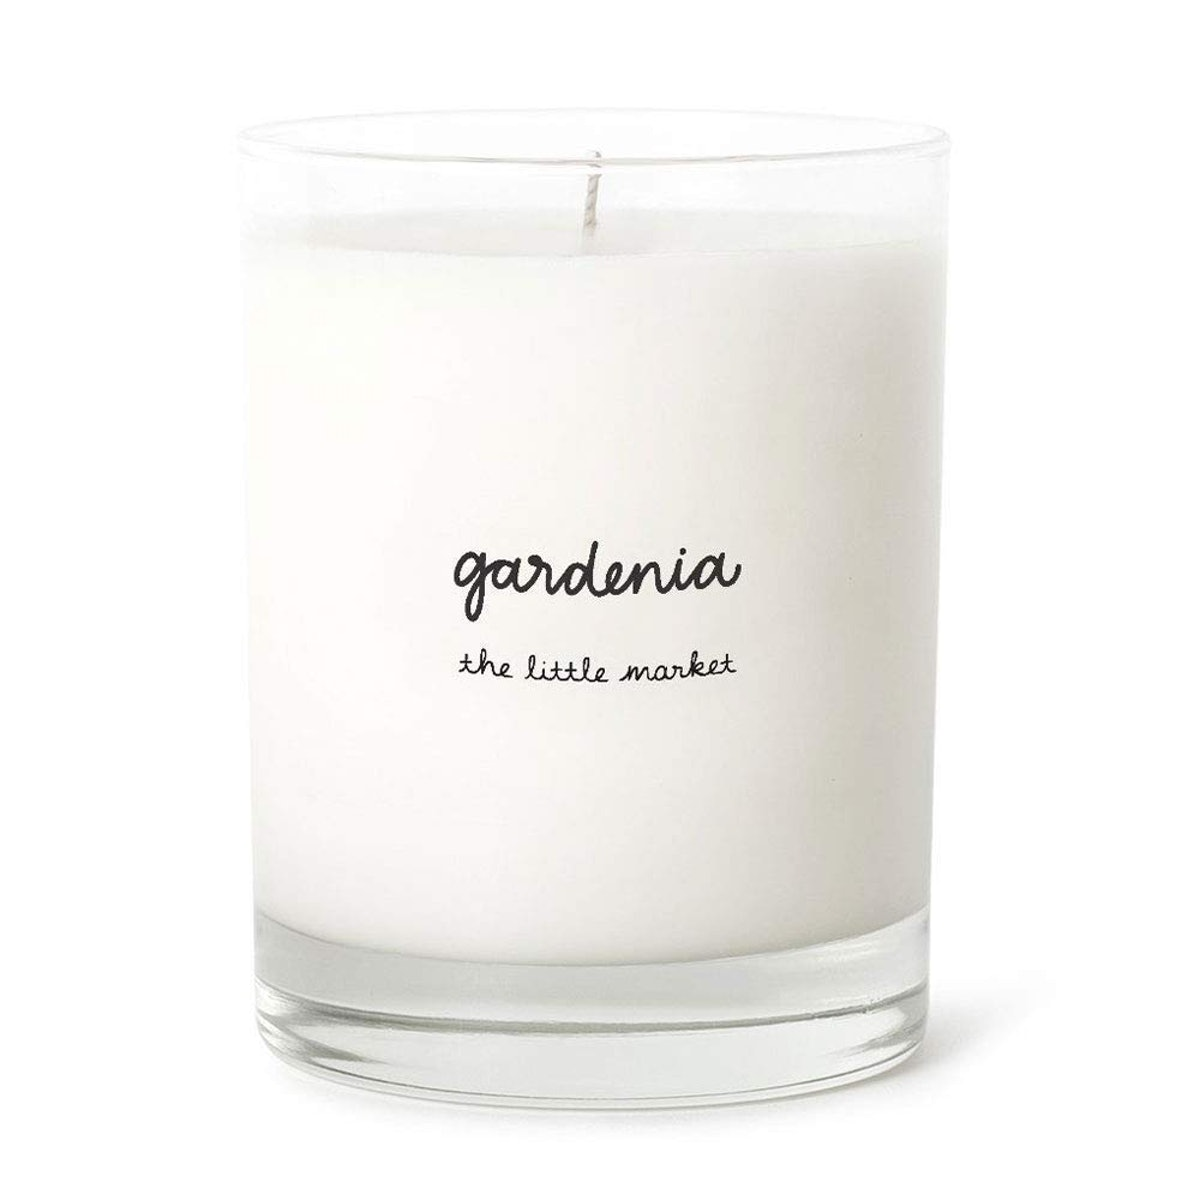 Coconut-Soy Wax Blend Scented Candle - Gardenia